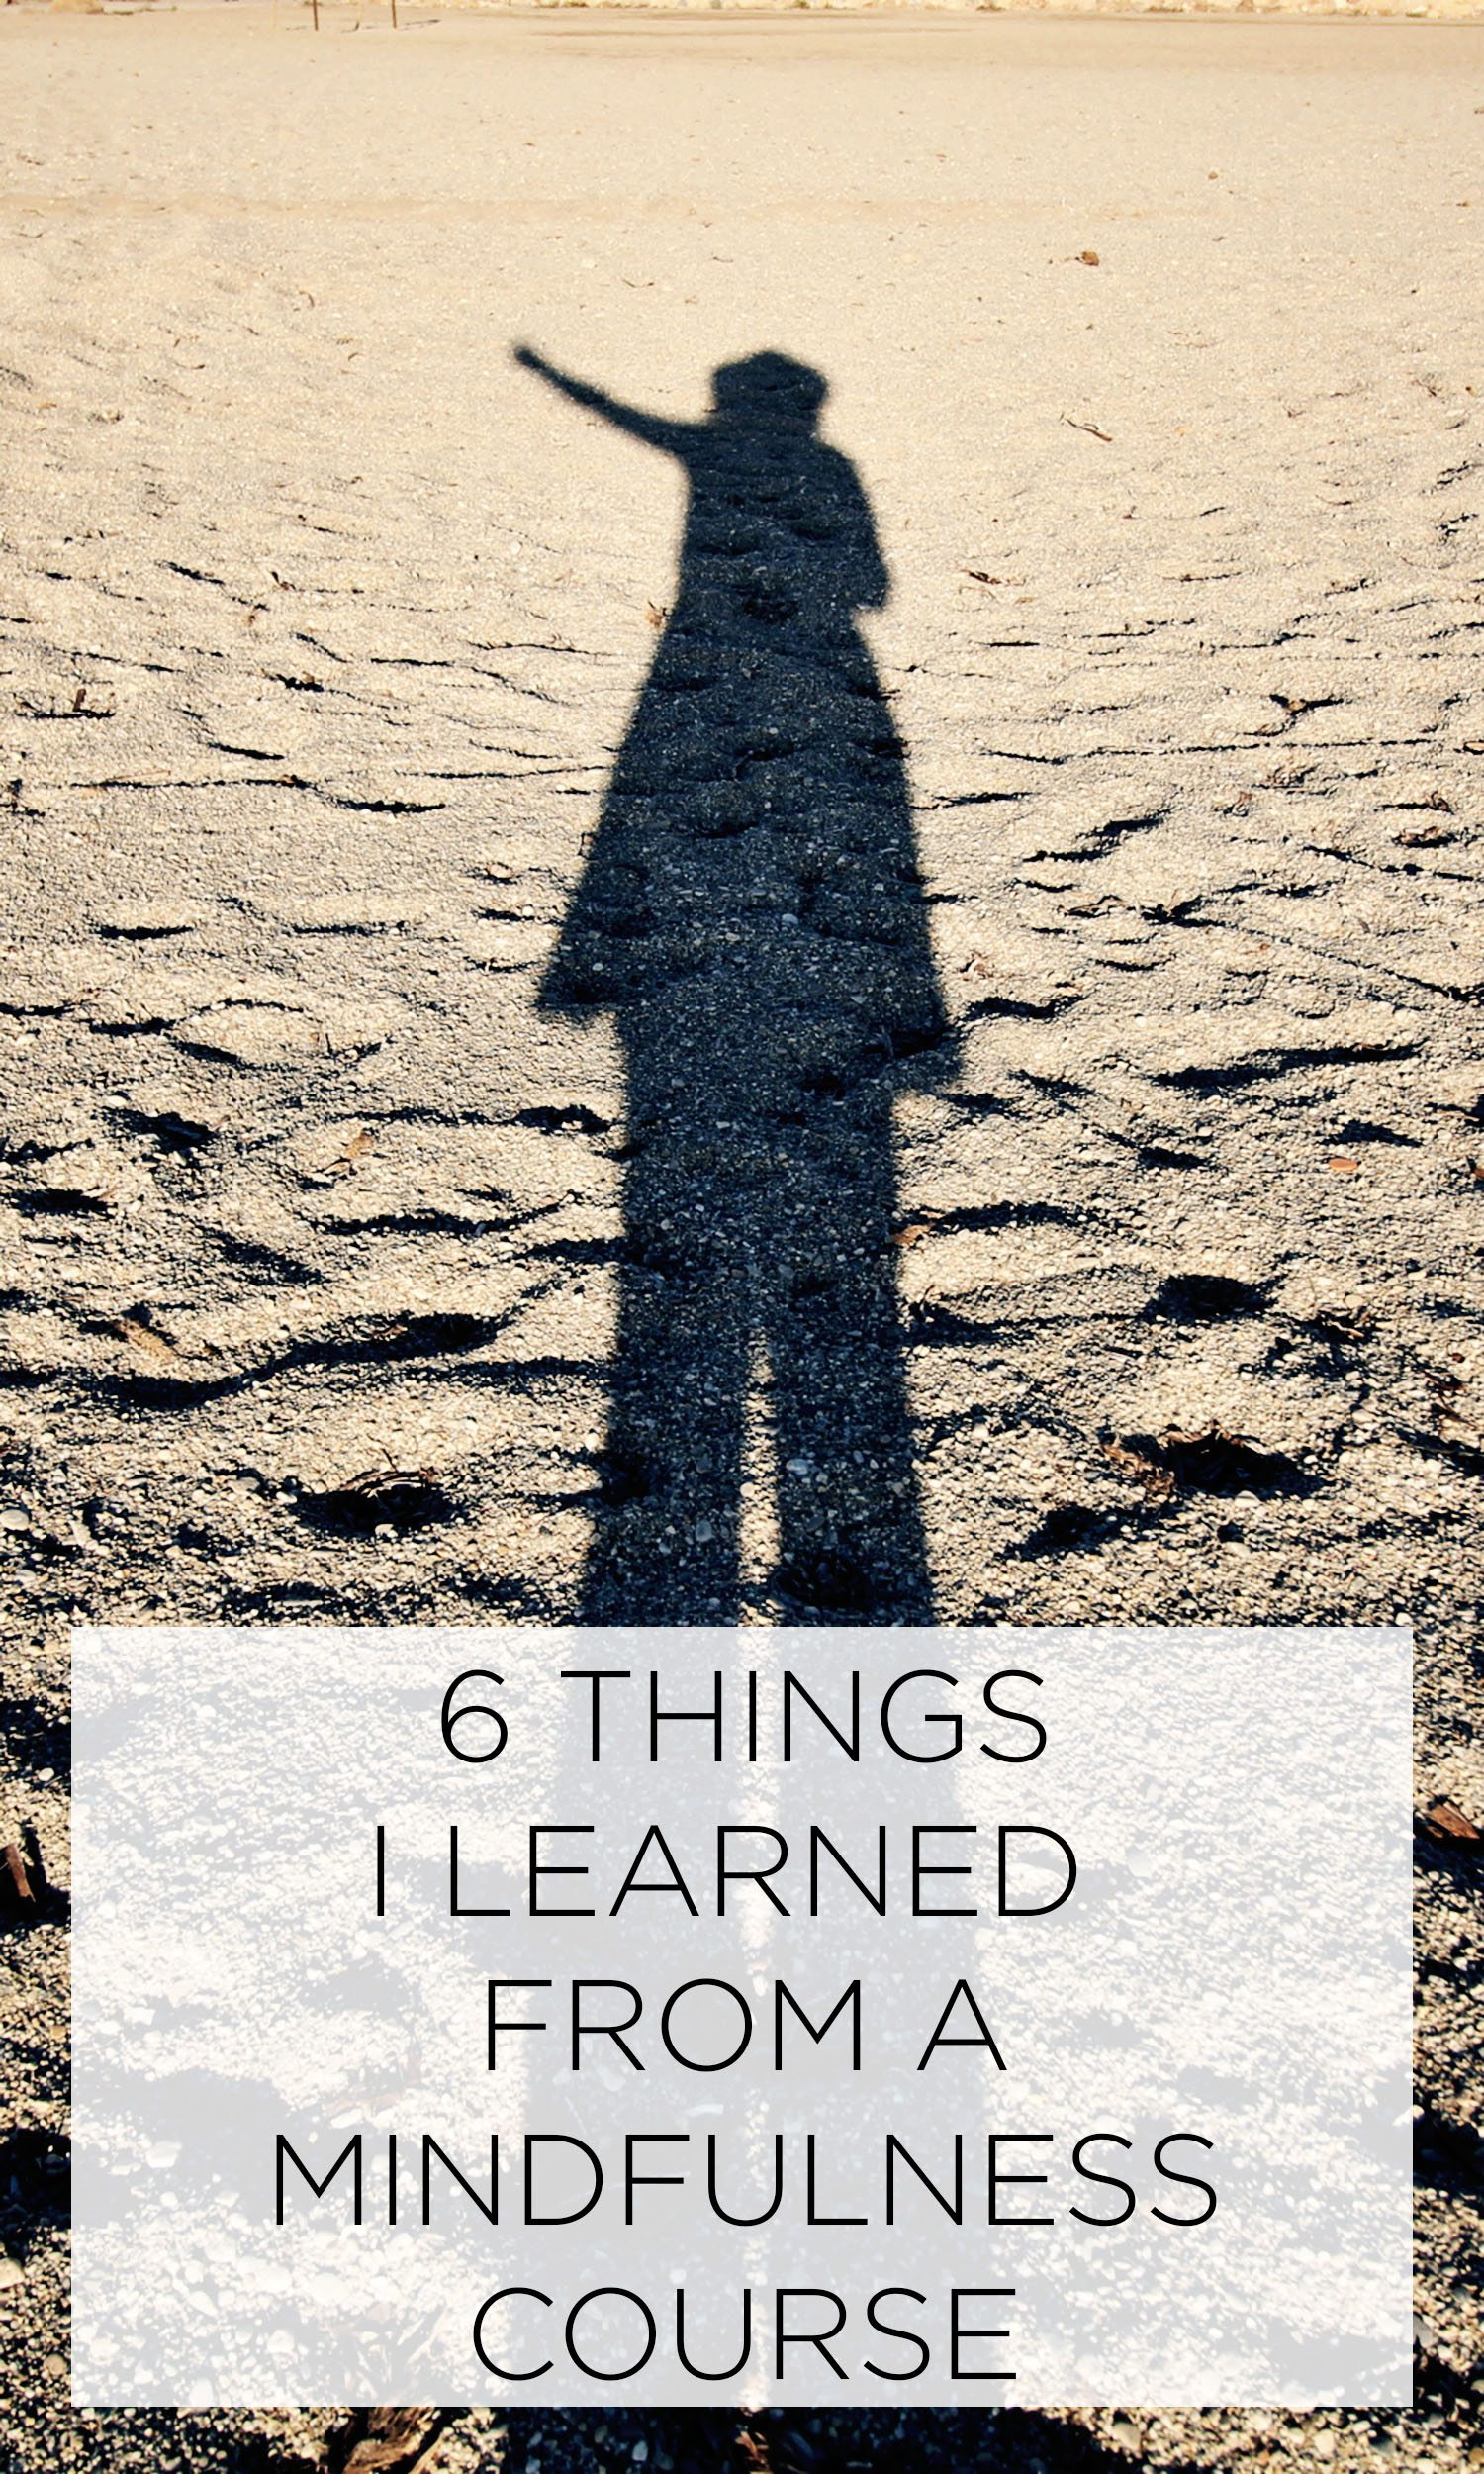 6 THINGS I LEARNED FROM A MINDFULNESS COURSE